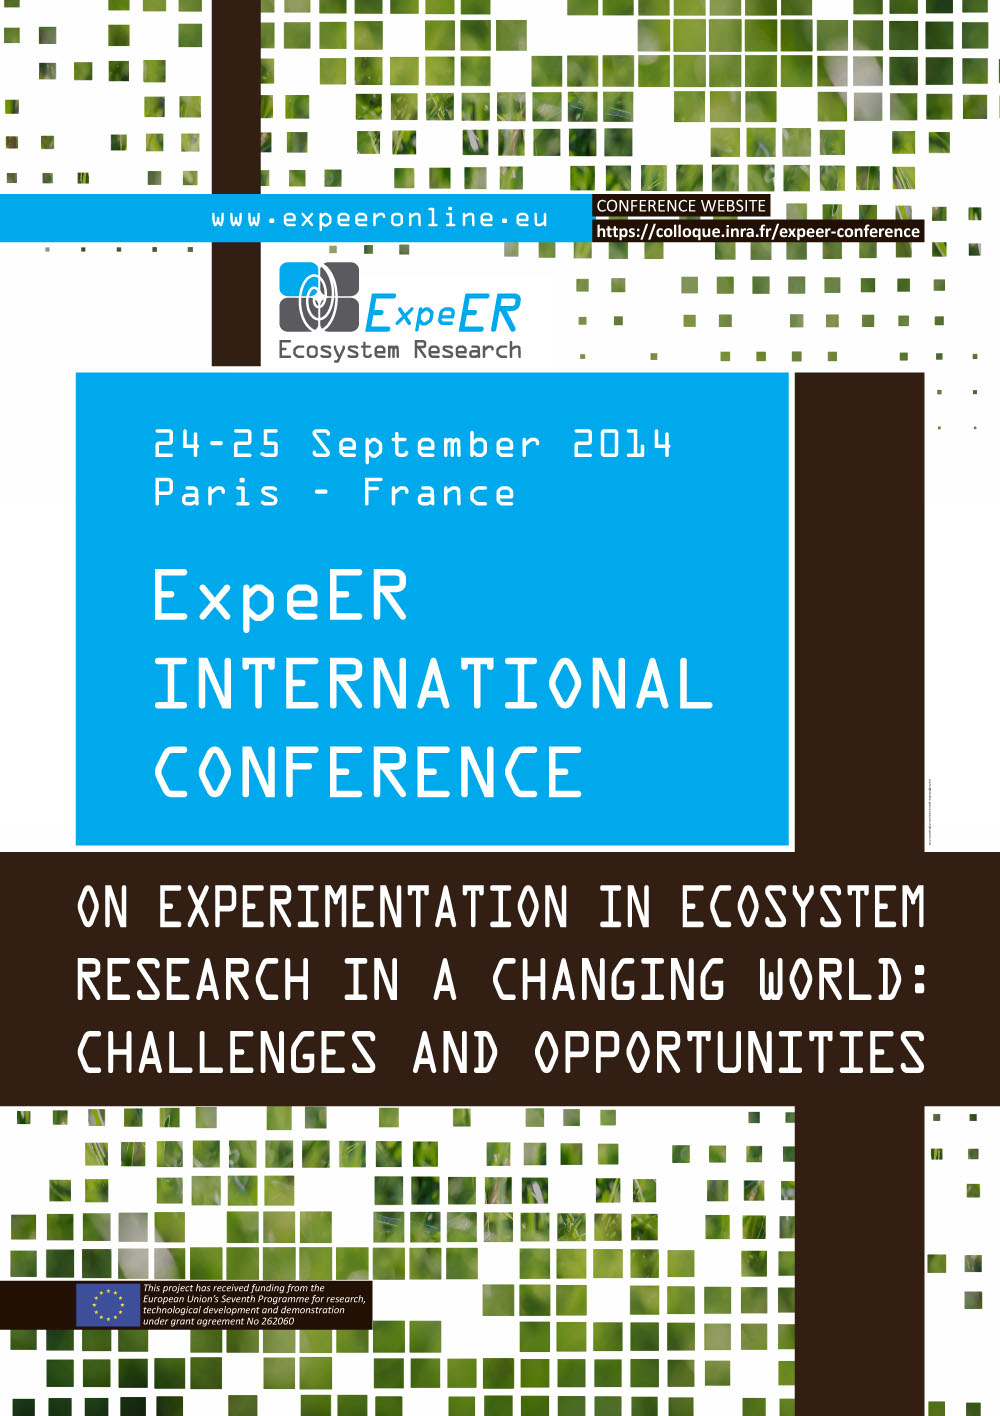 ExpeER international conference